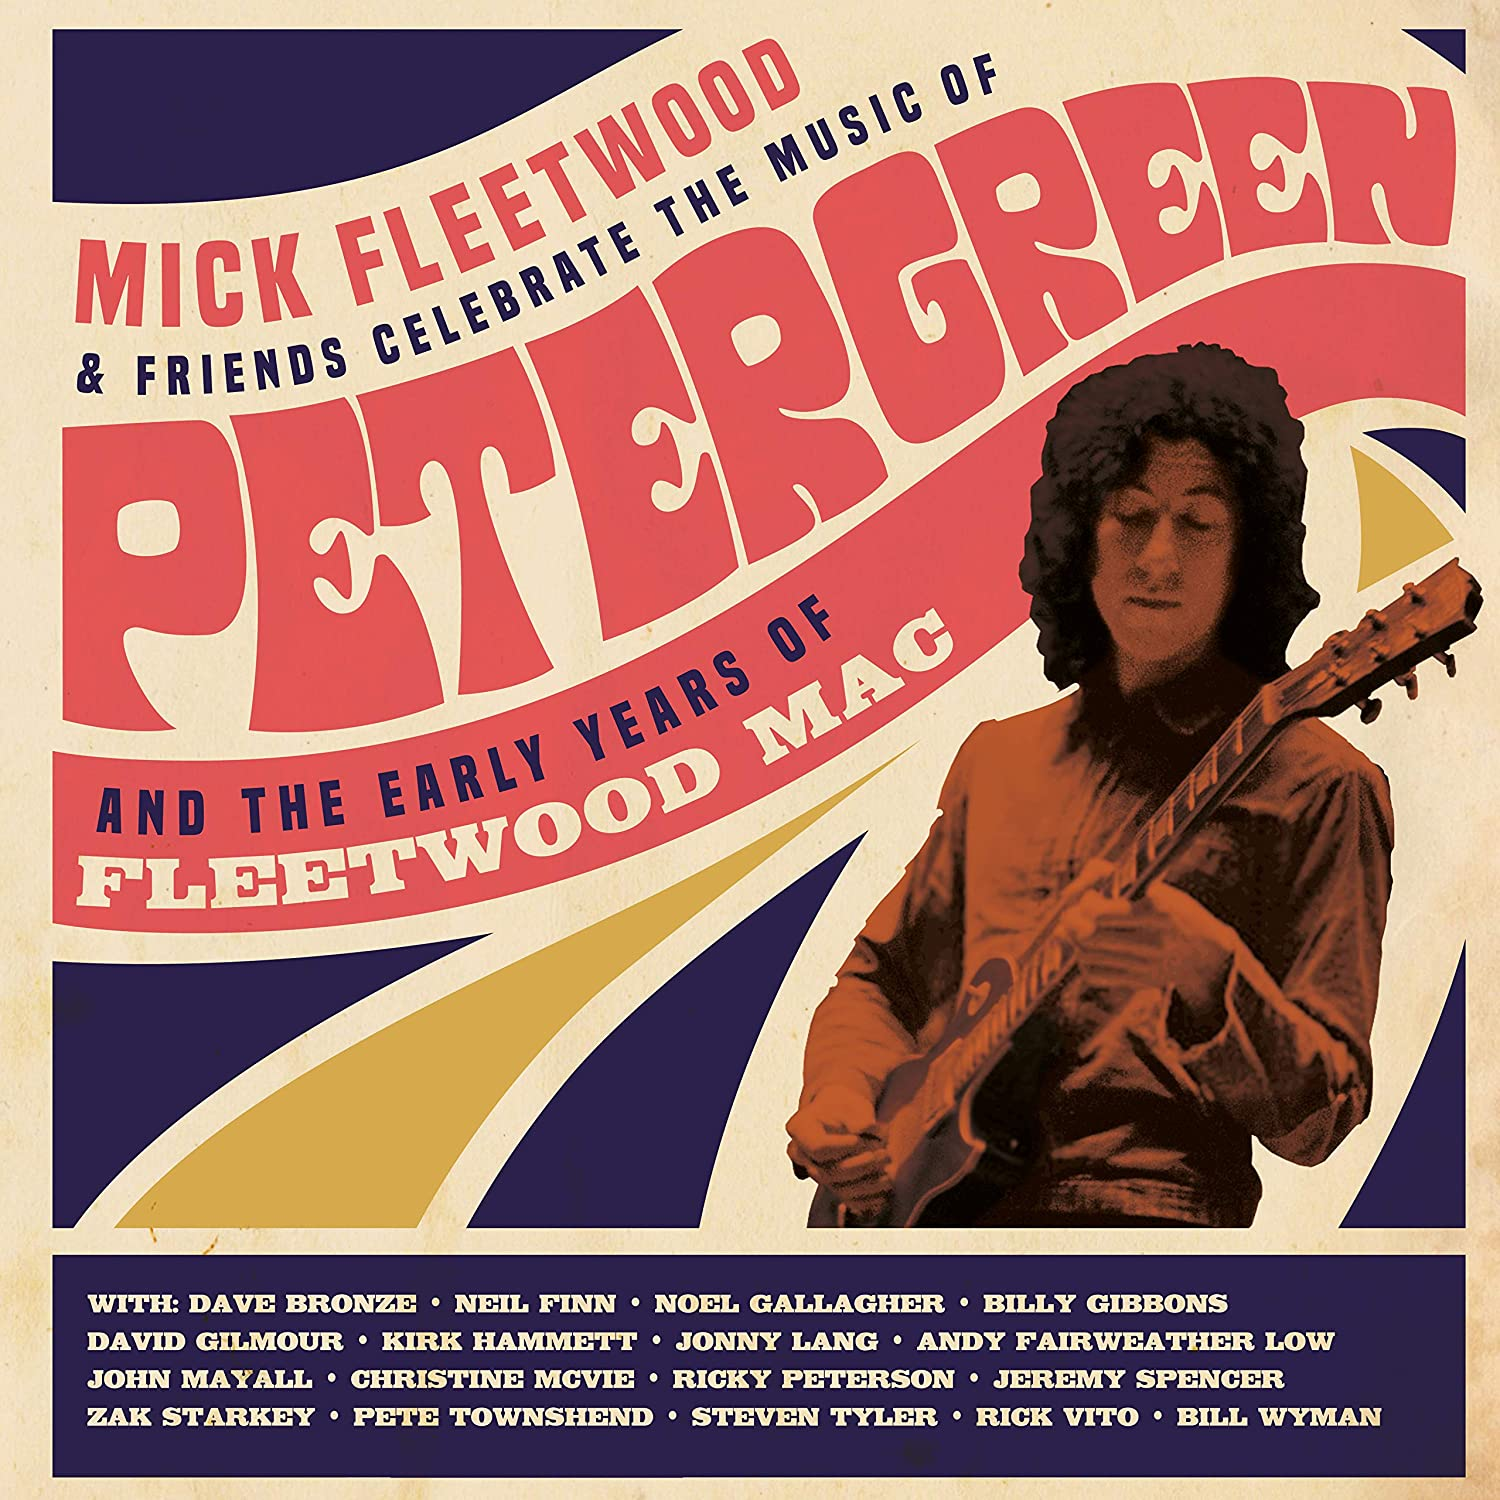 Mick Fleetwood and Friends - Celebrate the Music of Peter G [2xCD+BlueRay]